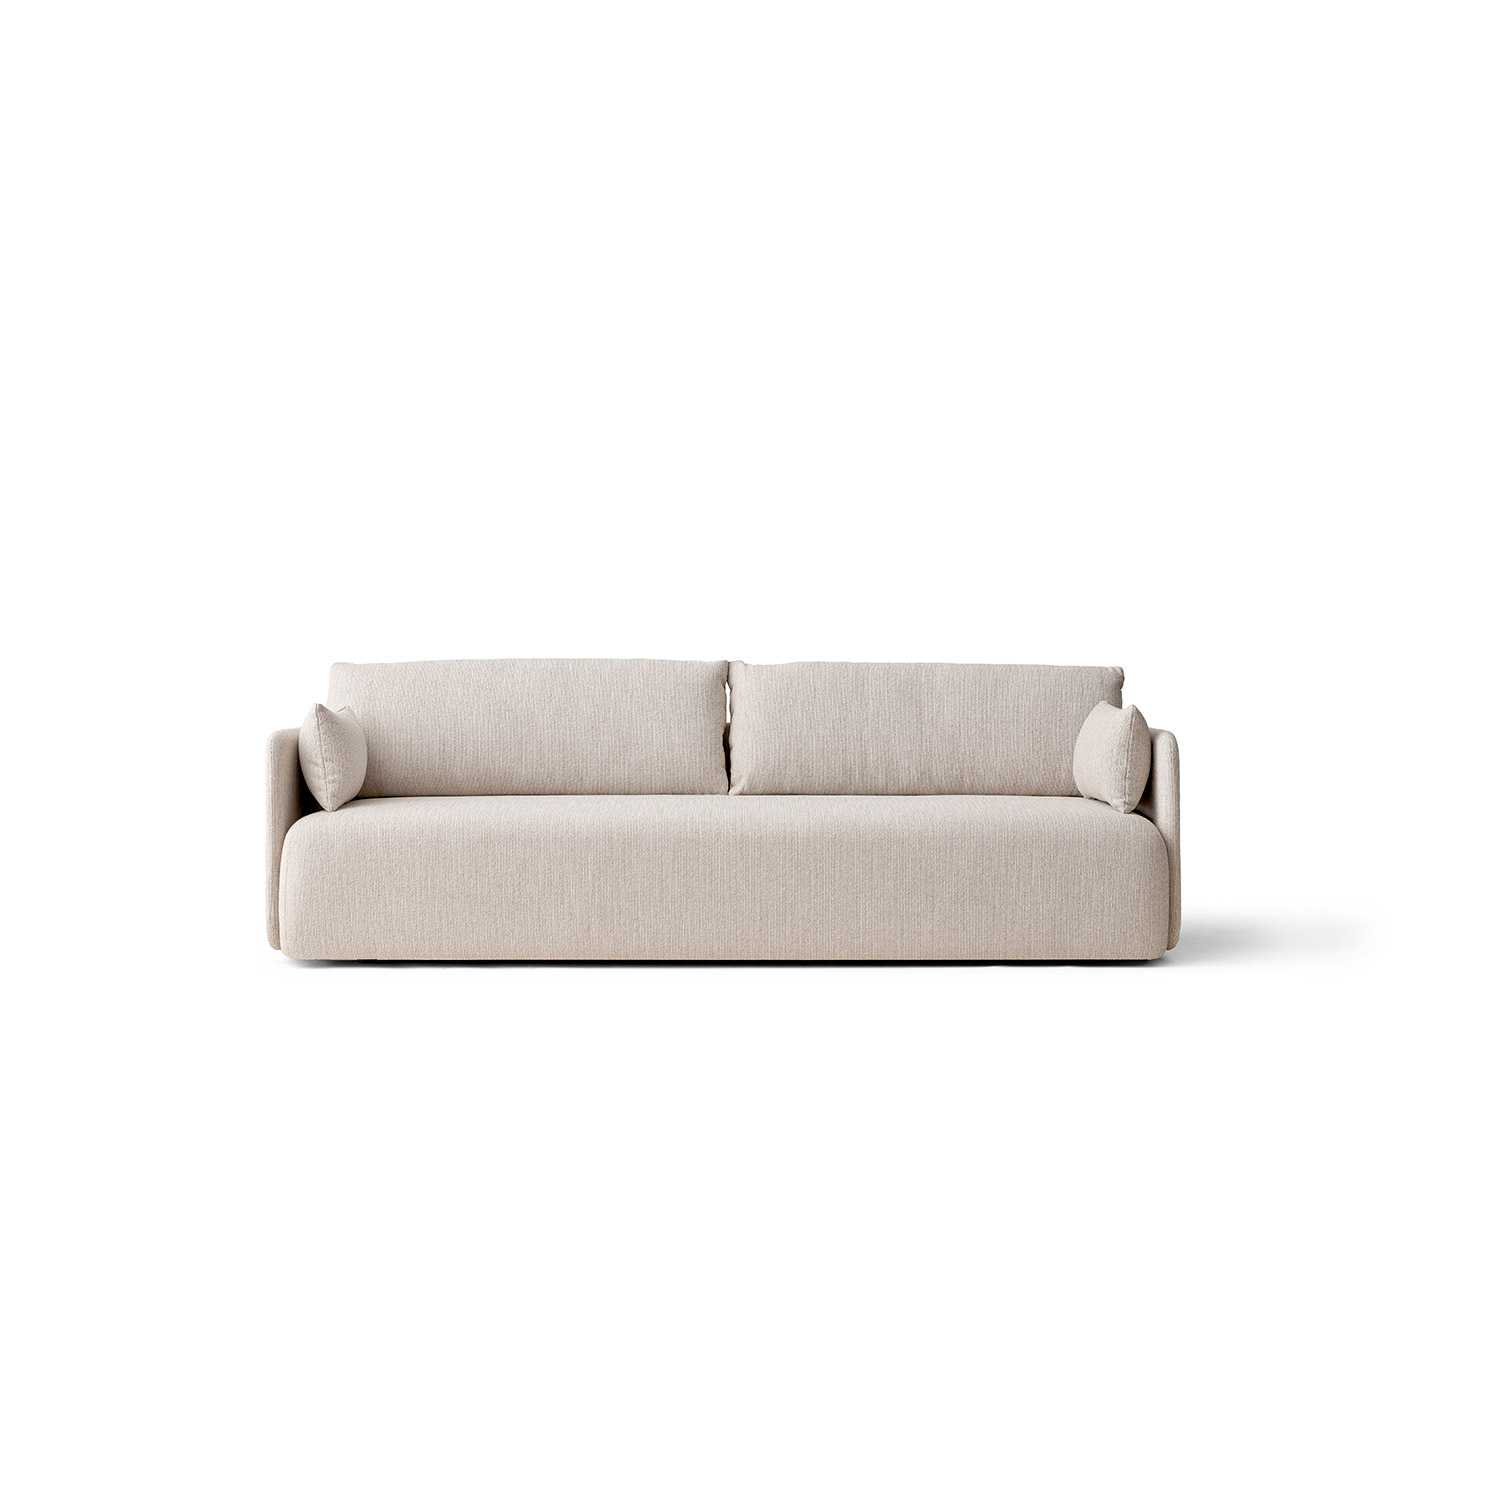 Offset Sofa 3 Seater, Savanna 202